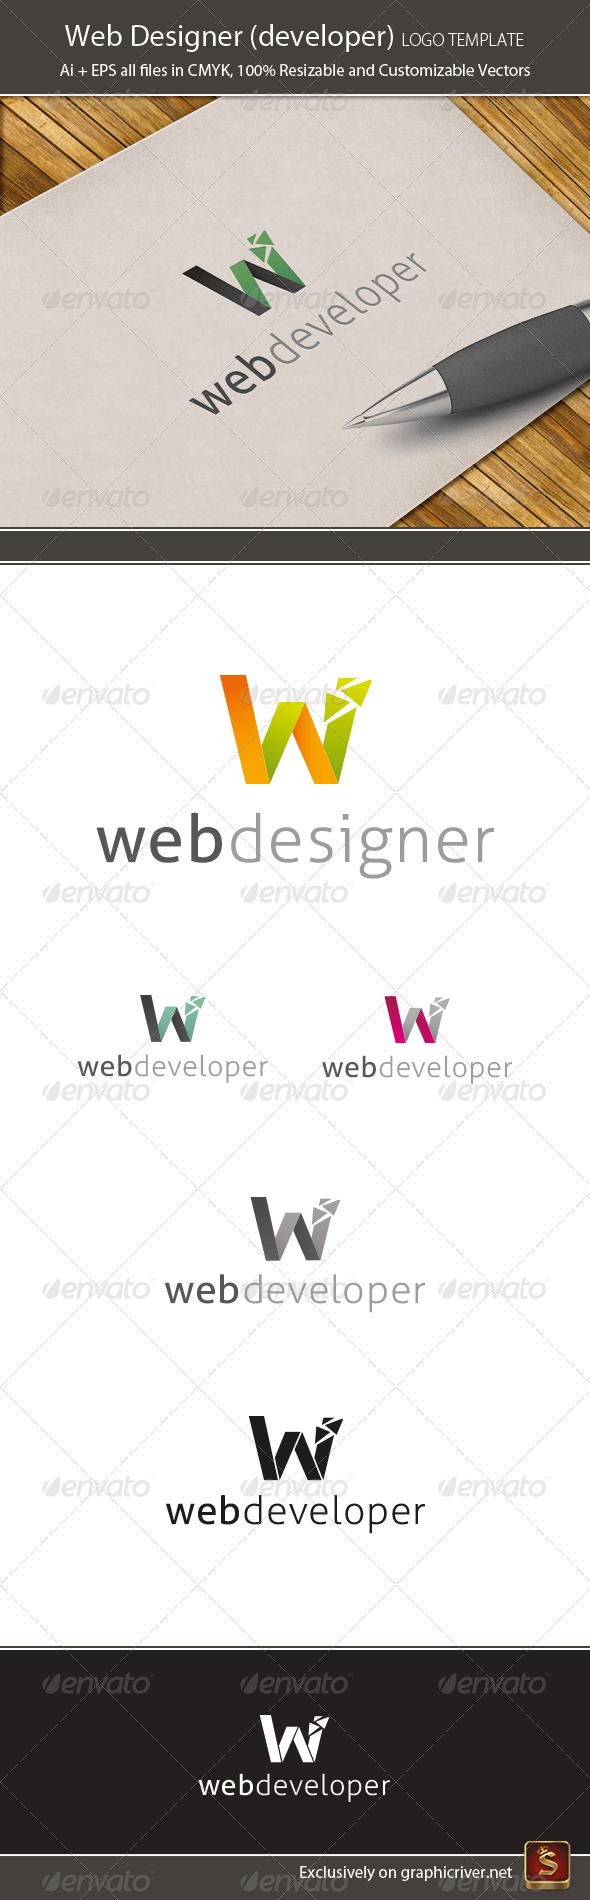 GraphicRiver Web Designer & Developer Logo Template 3637059